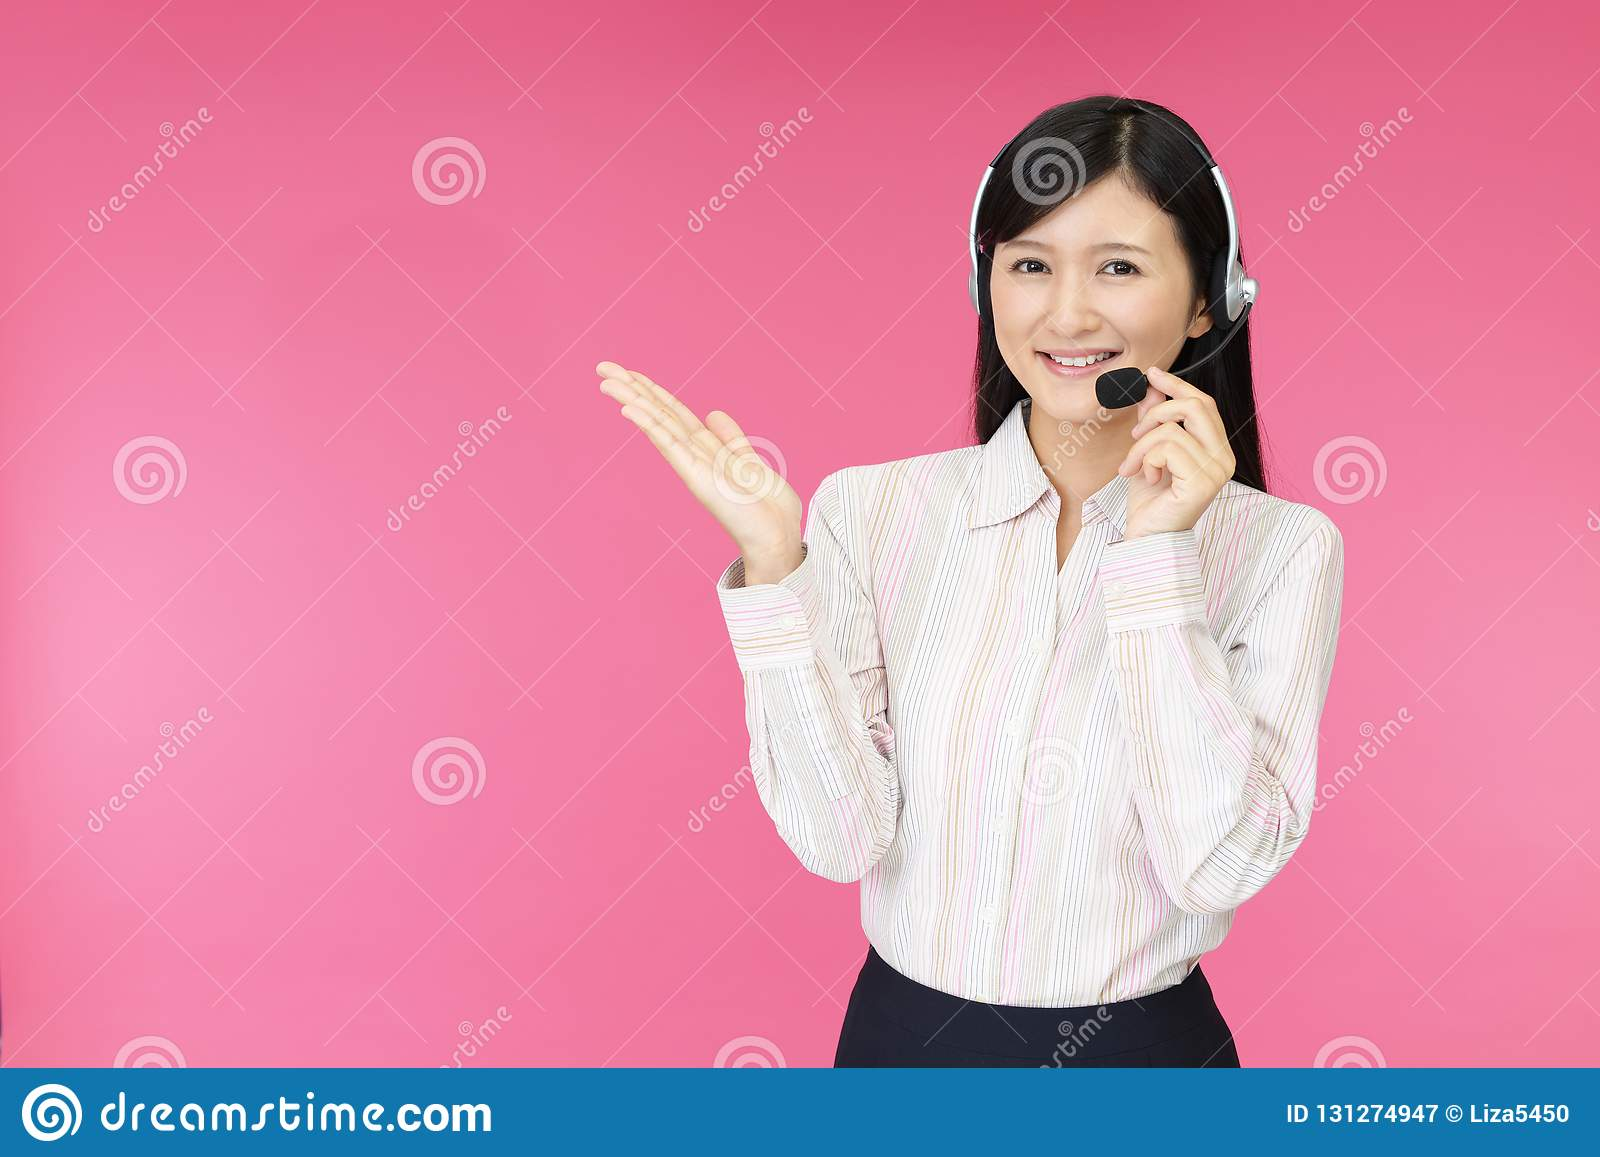 Call center operator showing something on the palm of her hand